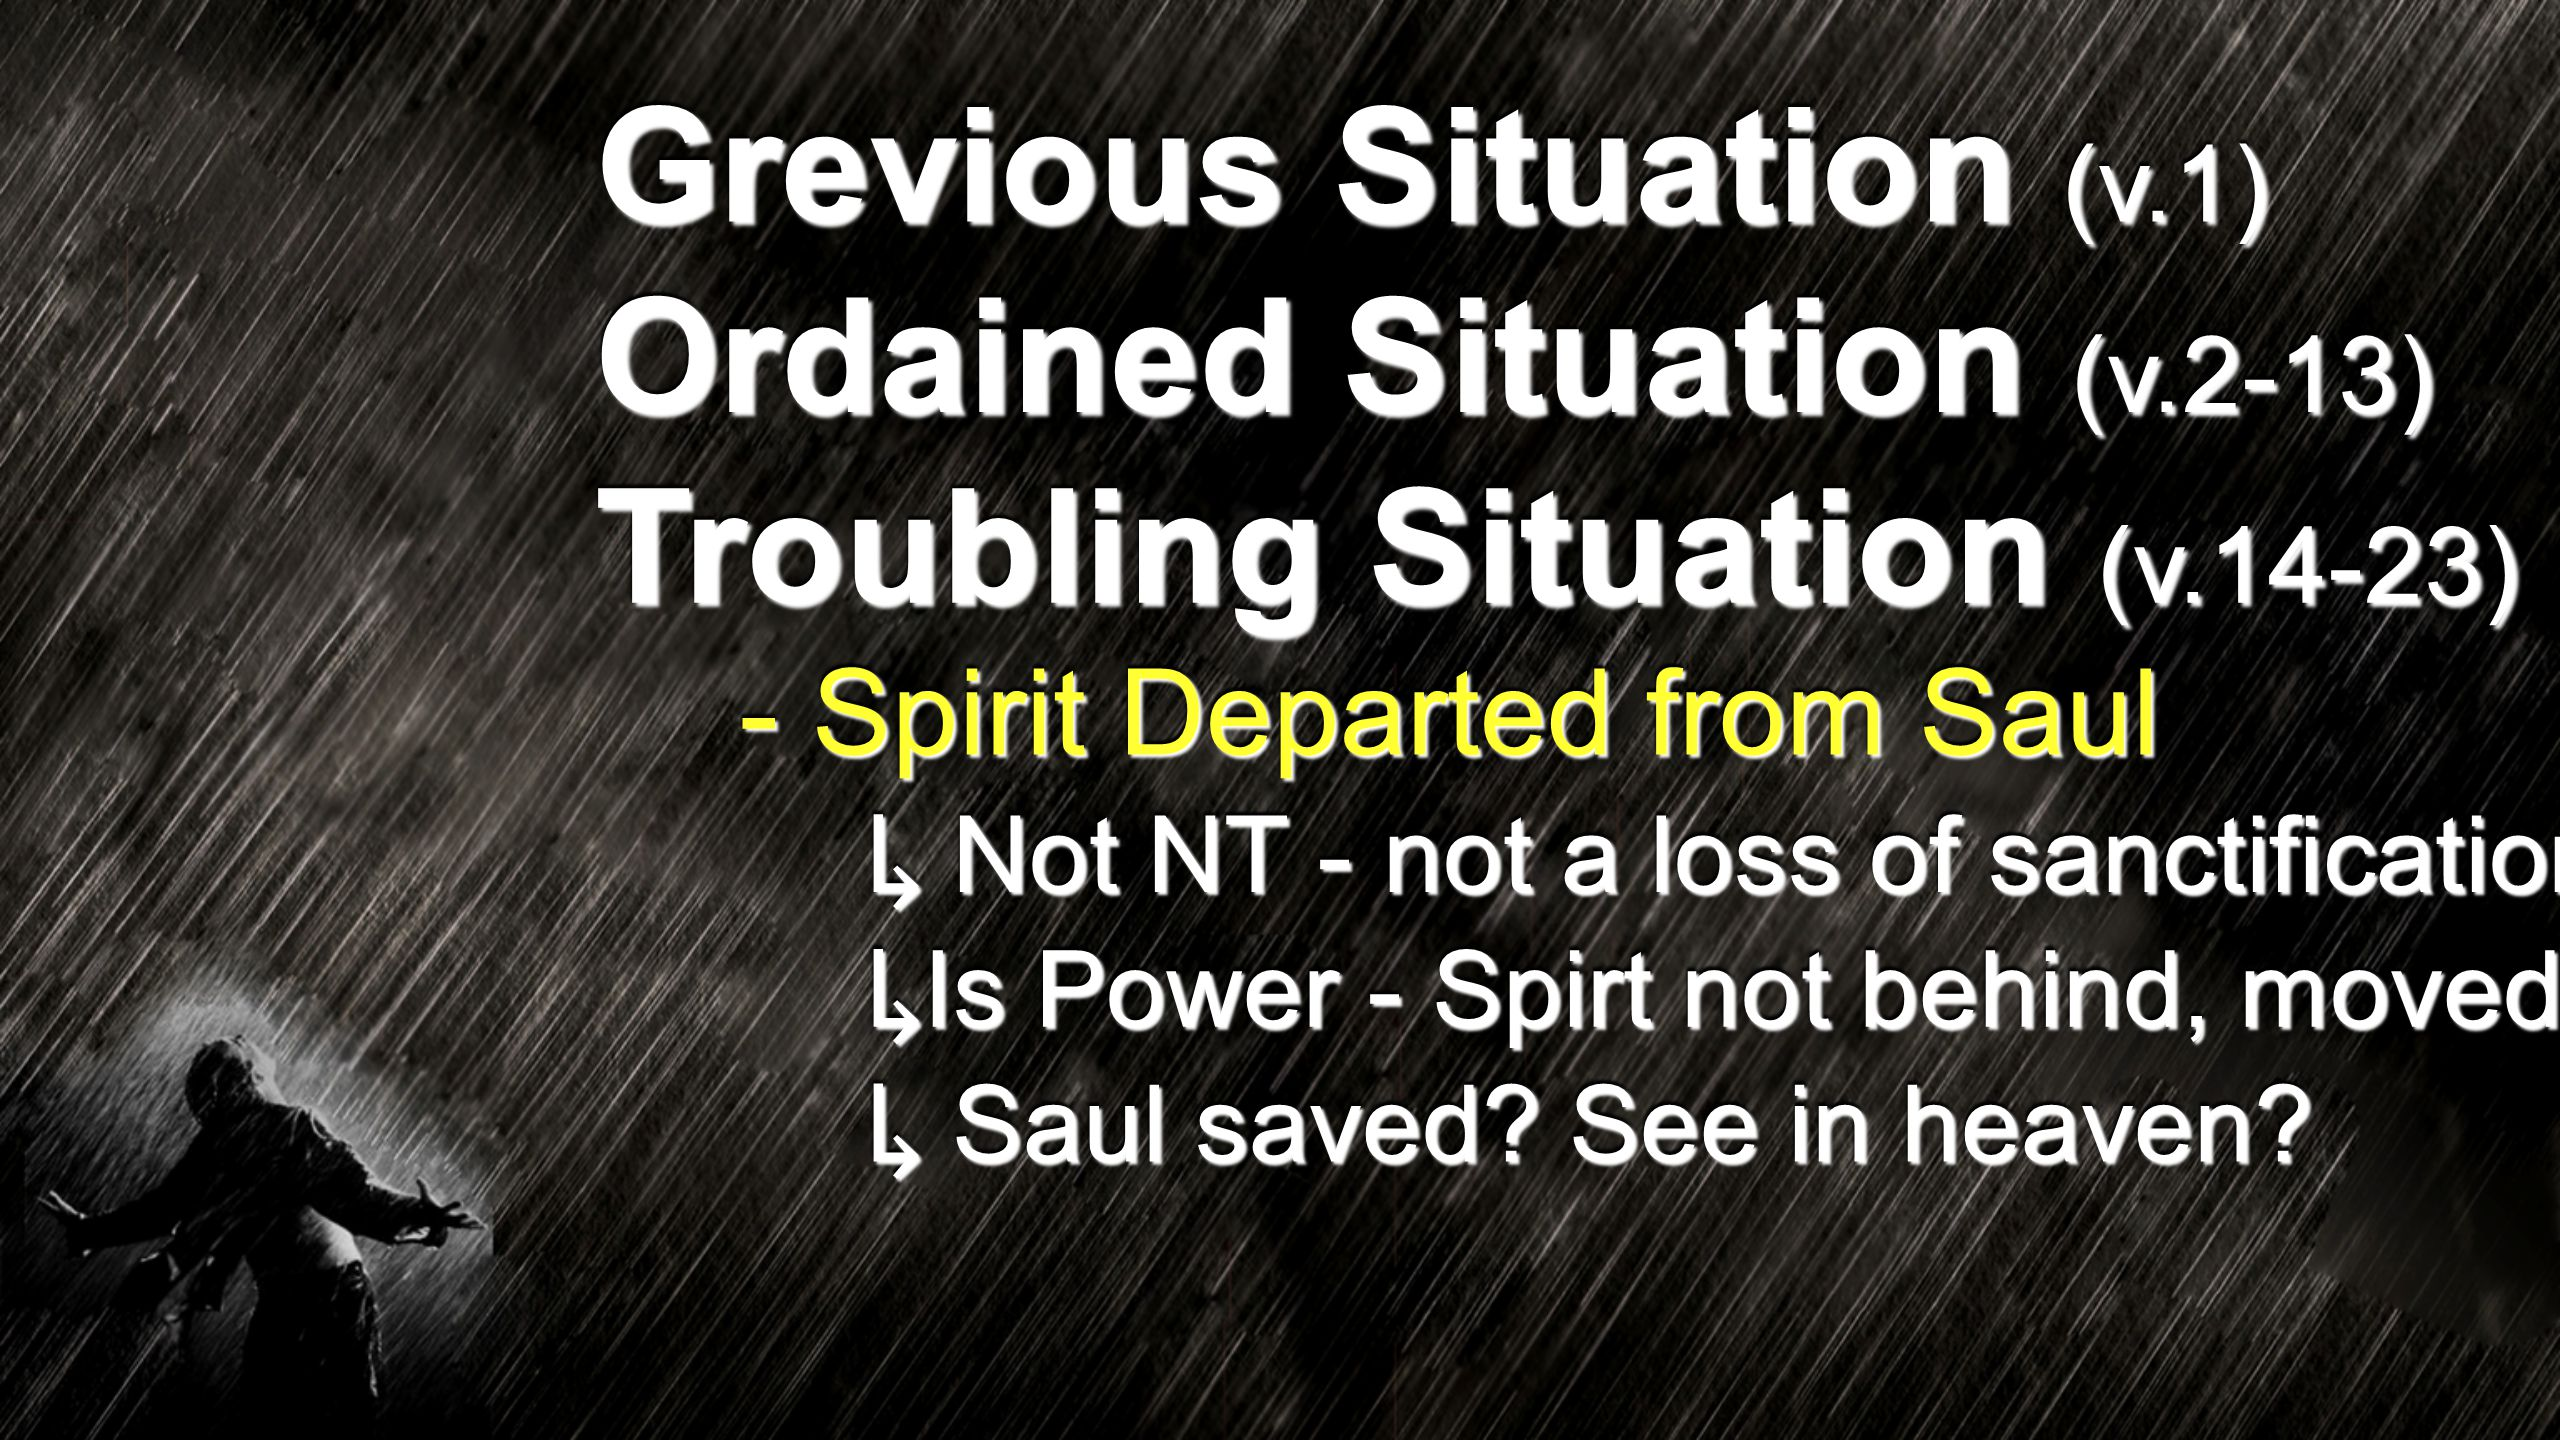 Grevious Situation (v.1) Ordained Situation (v.2-13) Troubling Situation (v.14-23) - Spirit Departed from Saul ↳ Not NT - not a loss of sanctification ↳ Is Power - Spirt not behind, moved ↳ Saul saved.